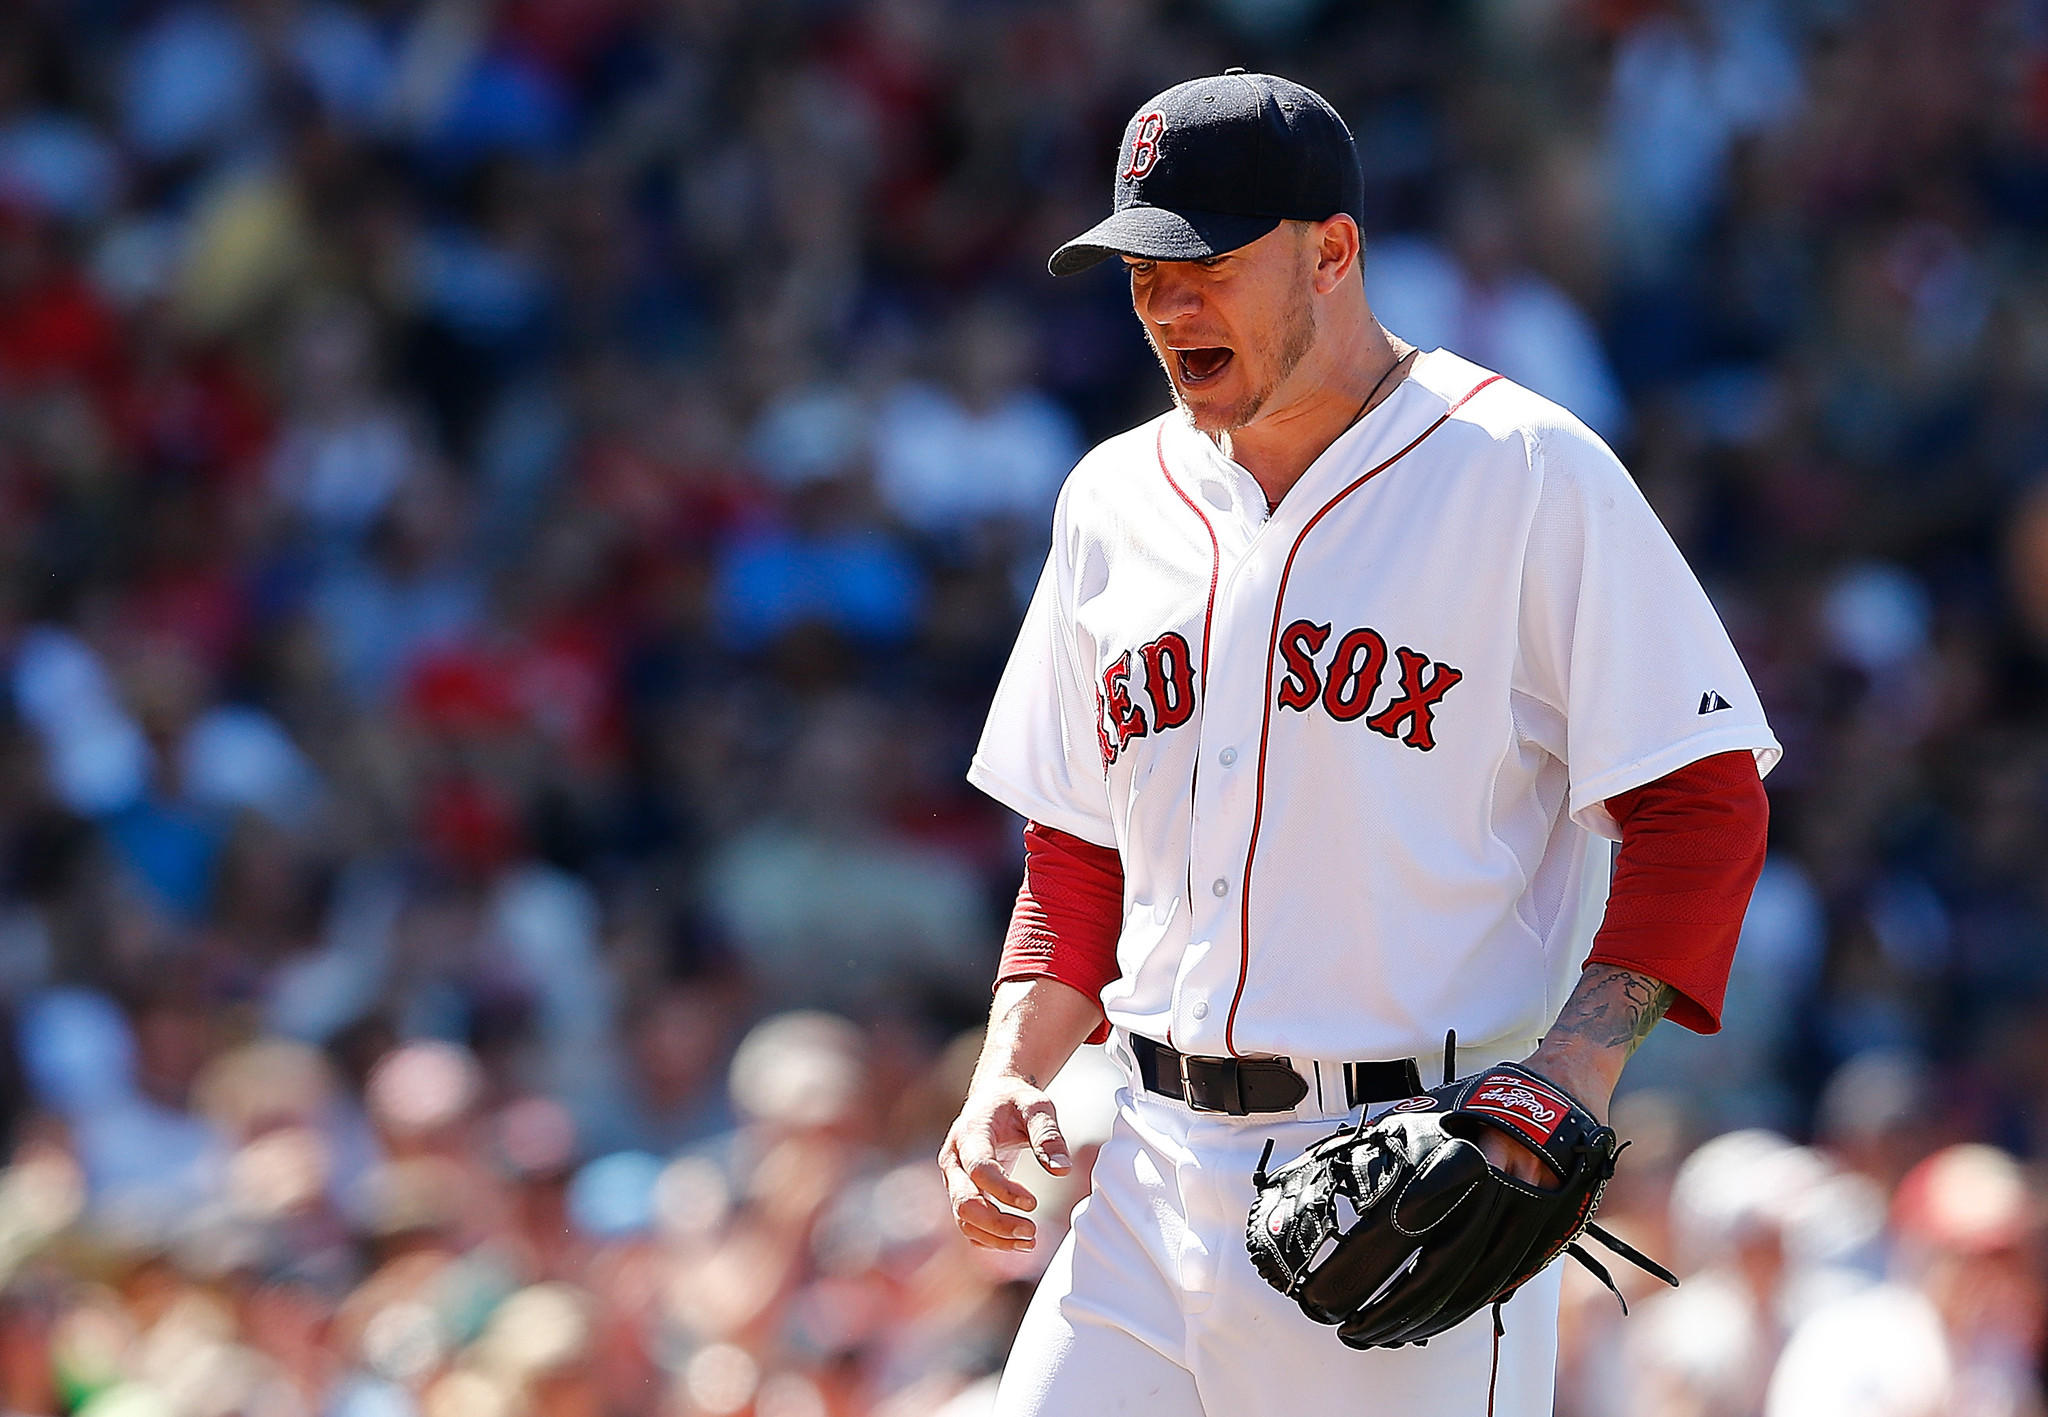 BOSTON, MA - JULY 6: Jake Peavy #44 of the Boston Red Sox reacts after pitching in the sixth inning the Baltimore Orioles to fly out at Fenway Park on July 6, 2014 in Boston, Massachusetts. (Photo by Jim Rogash/Getty Images) ORG XMIT: 477586067